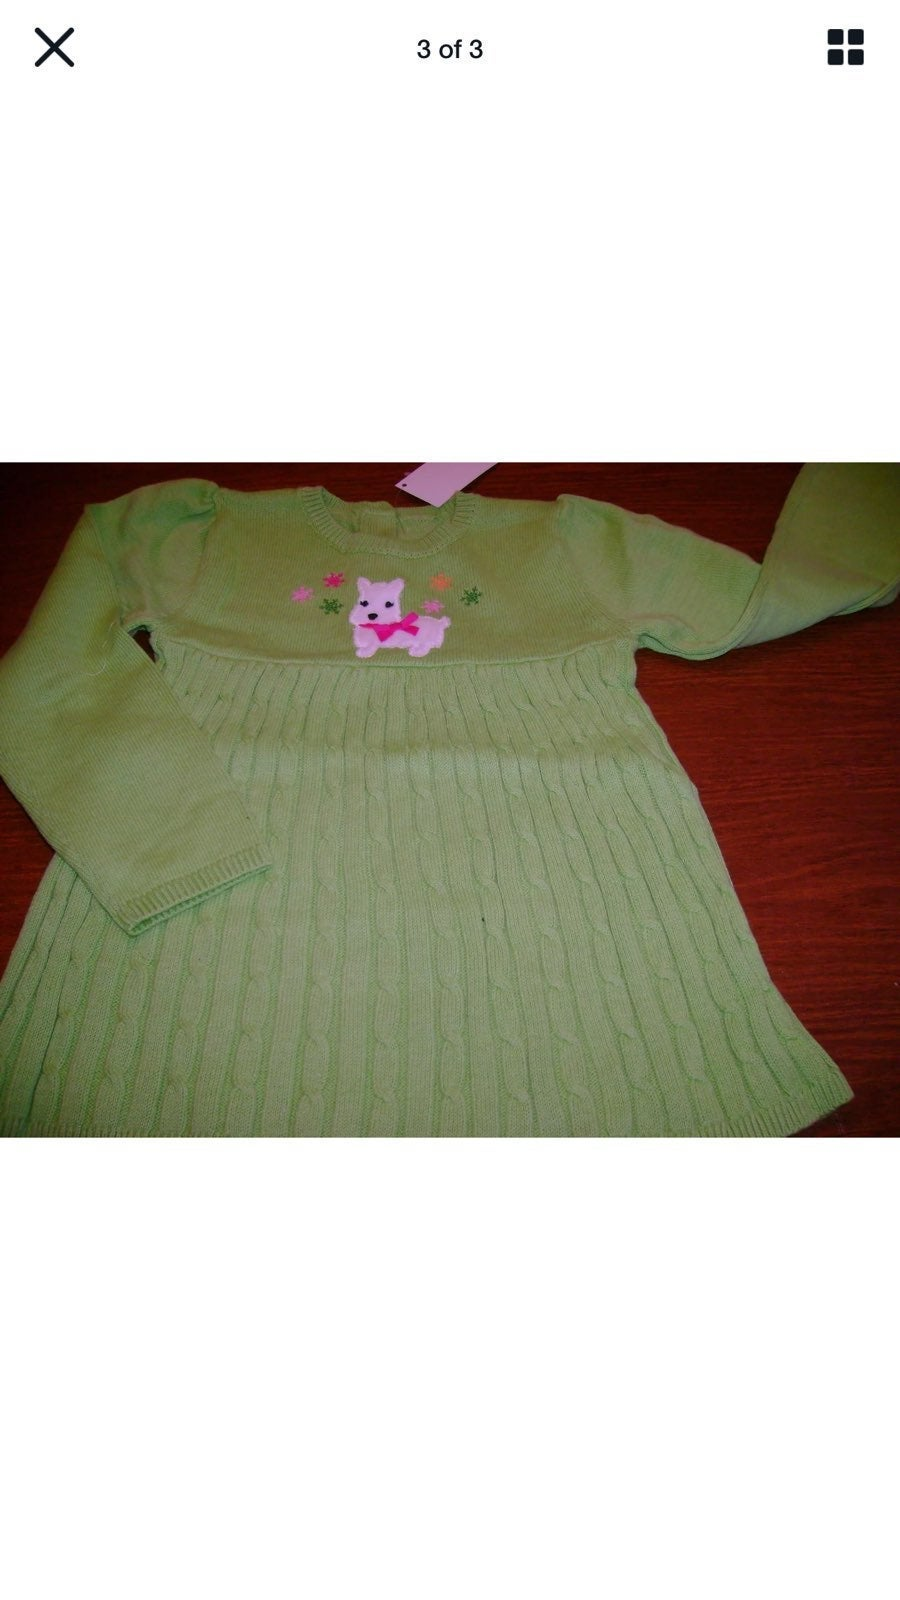 Nwt scotty dog sweater dress 5t 5 holida